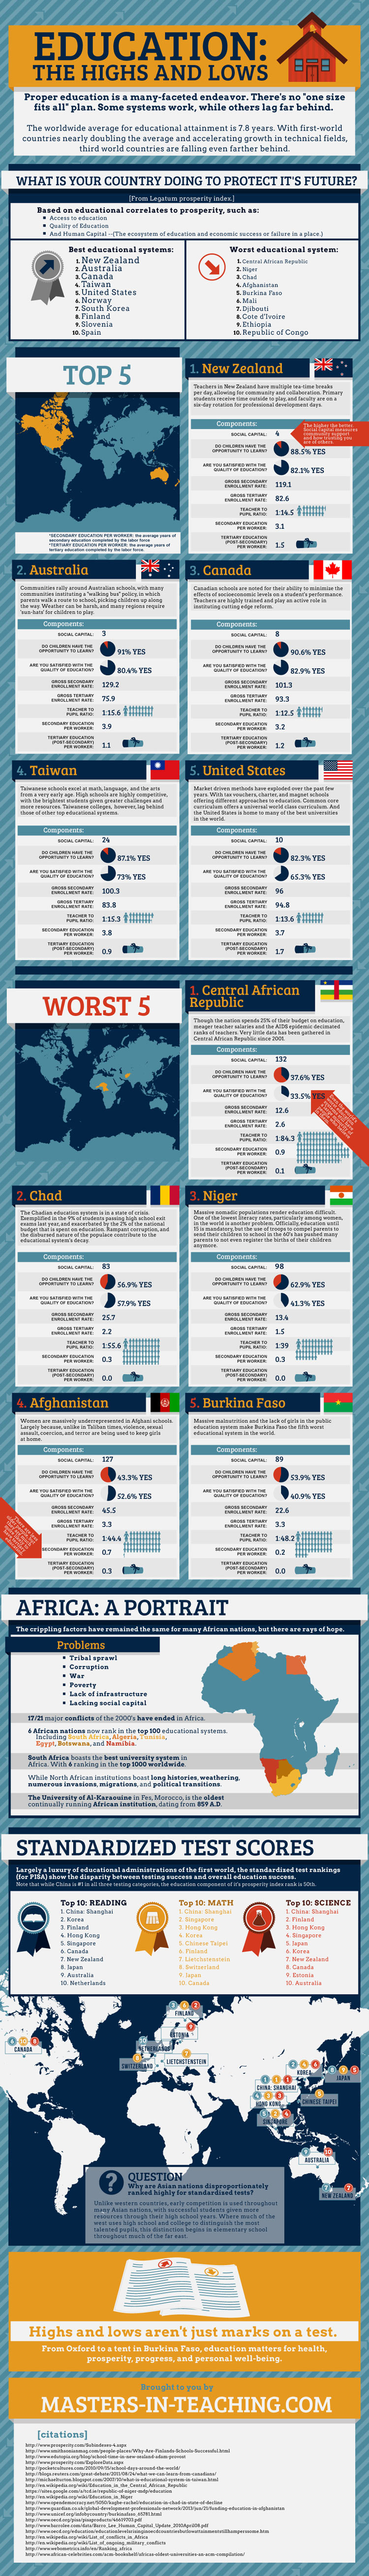 Educational Systems Ranking-Infographic